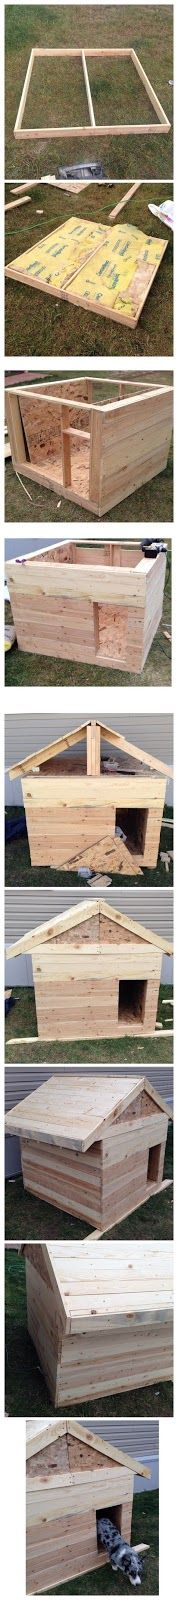 Dog House Made From Pallets  ---  #pallets